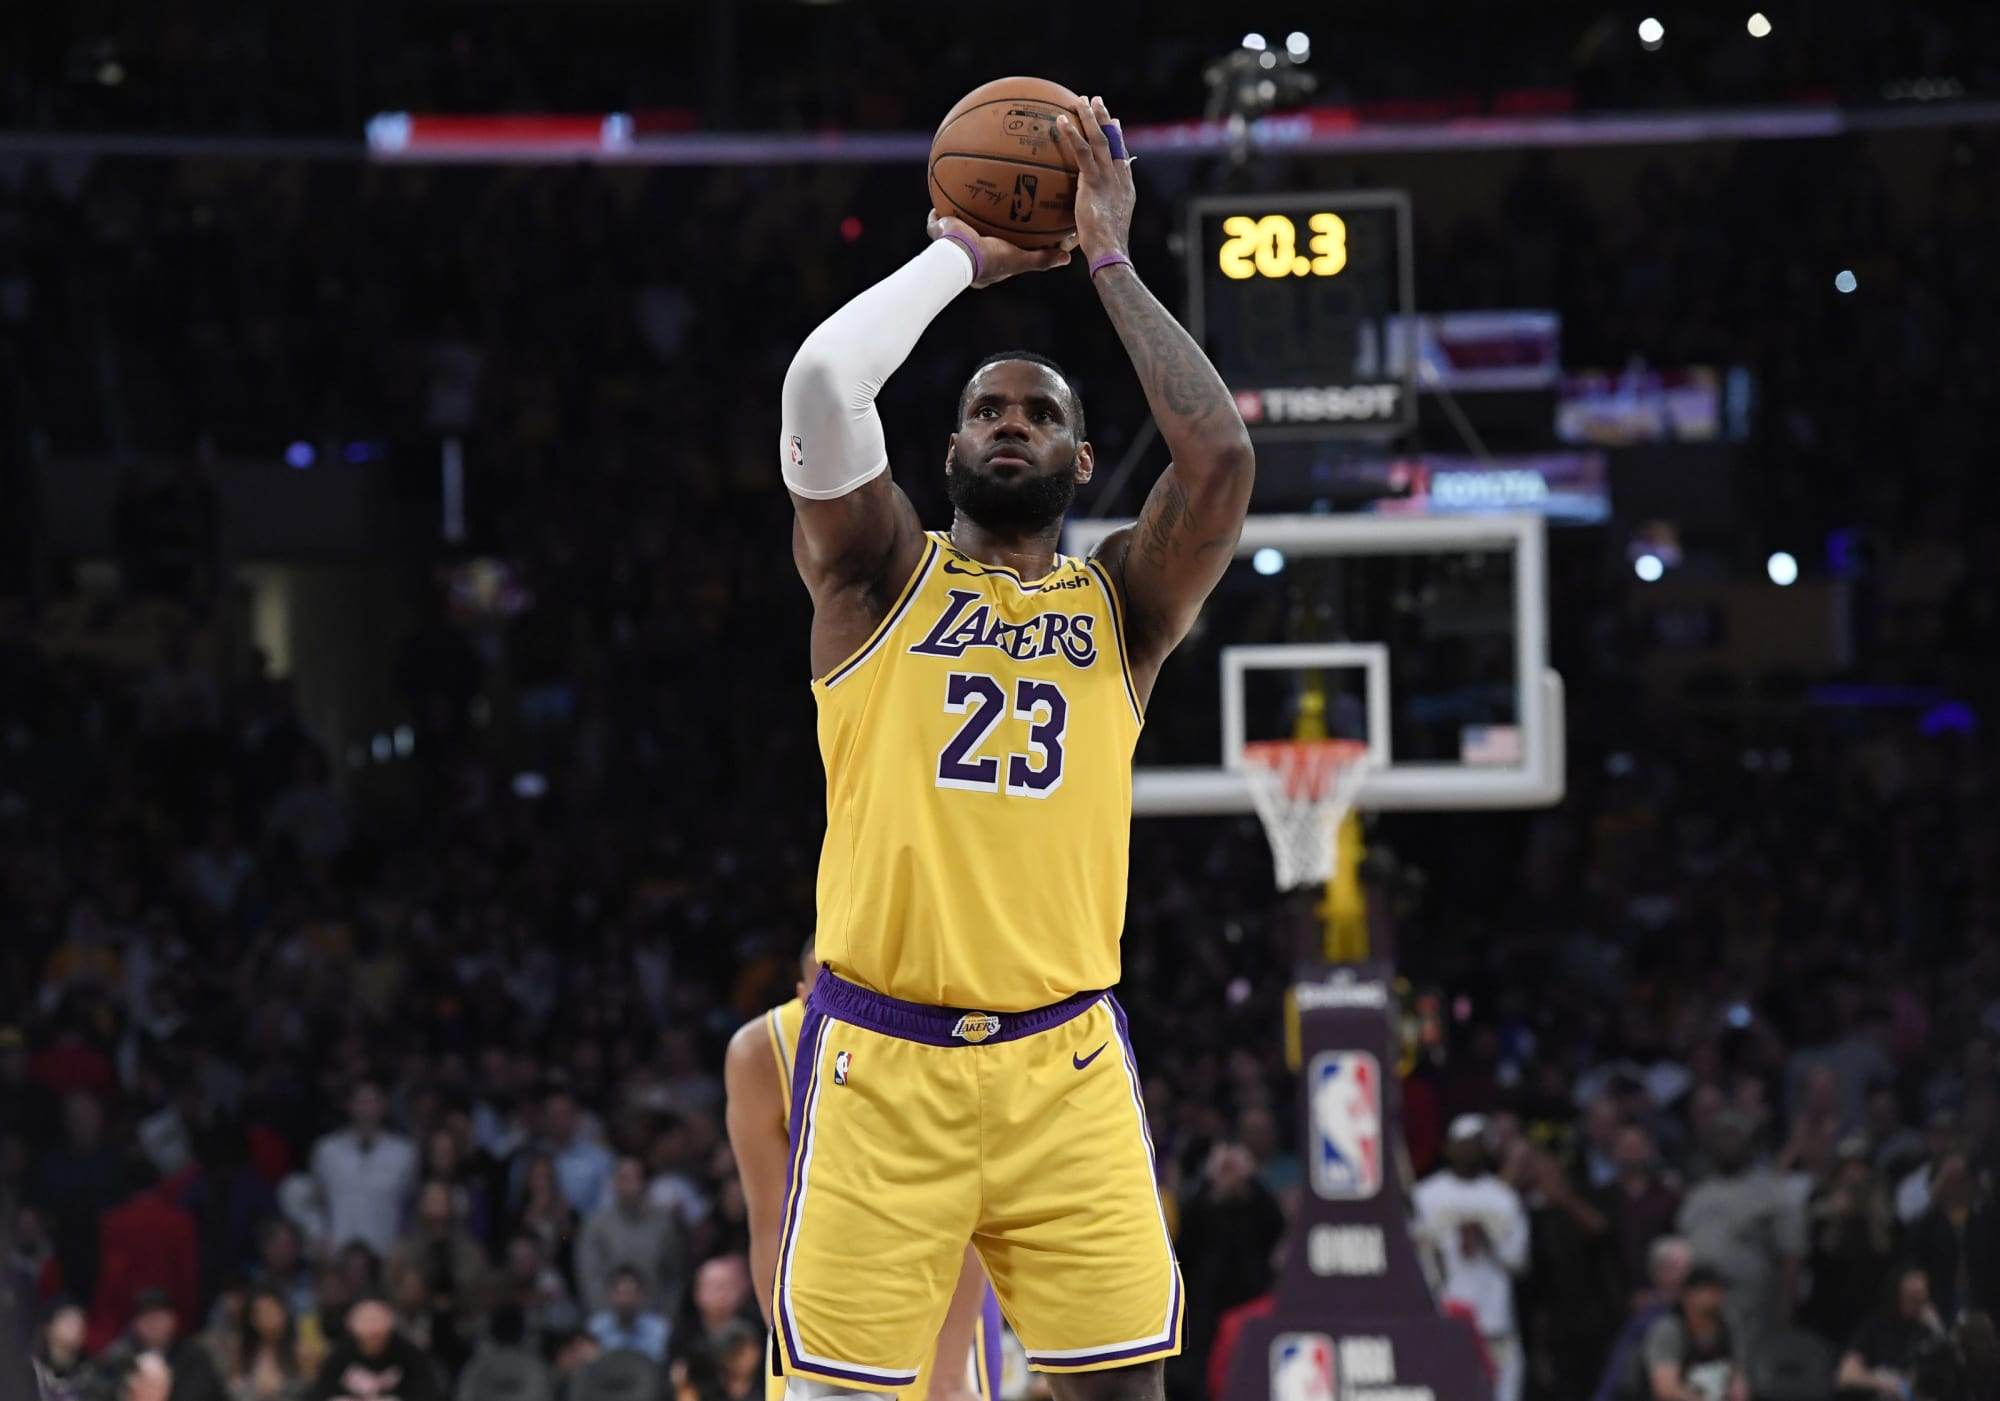 Is LeBron James the G.O.A.T.?